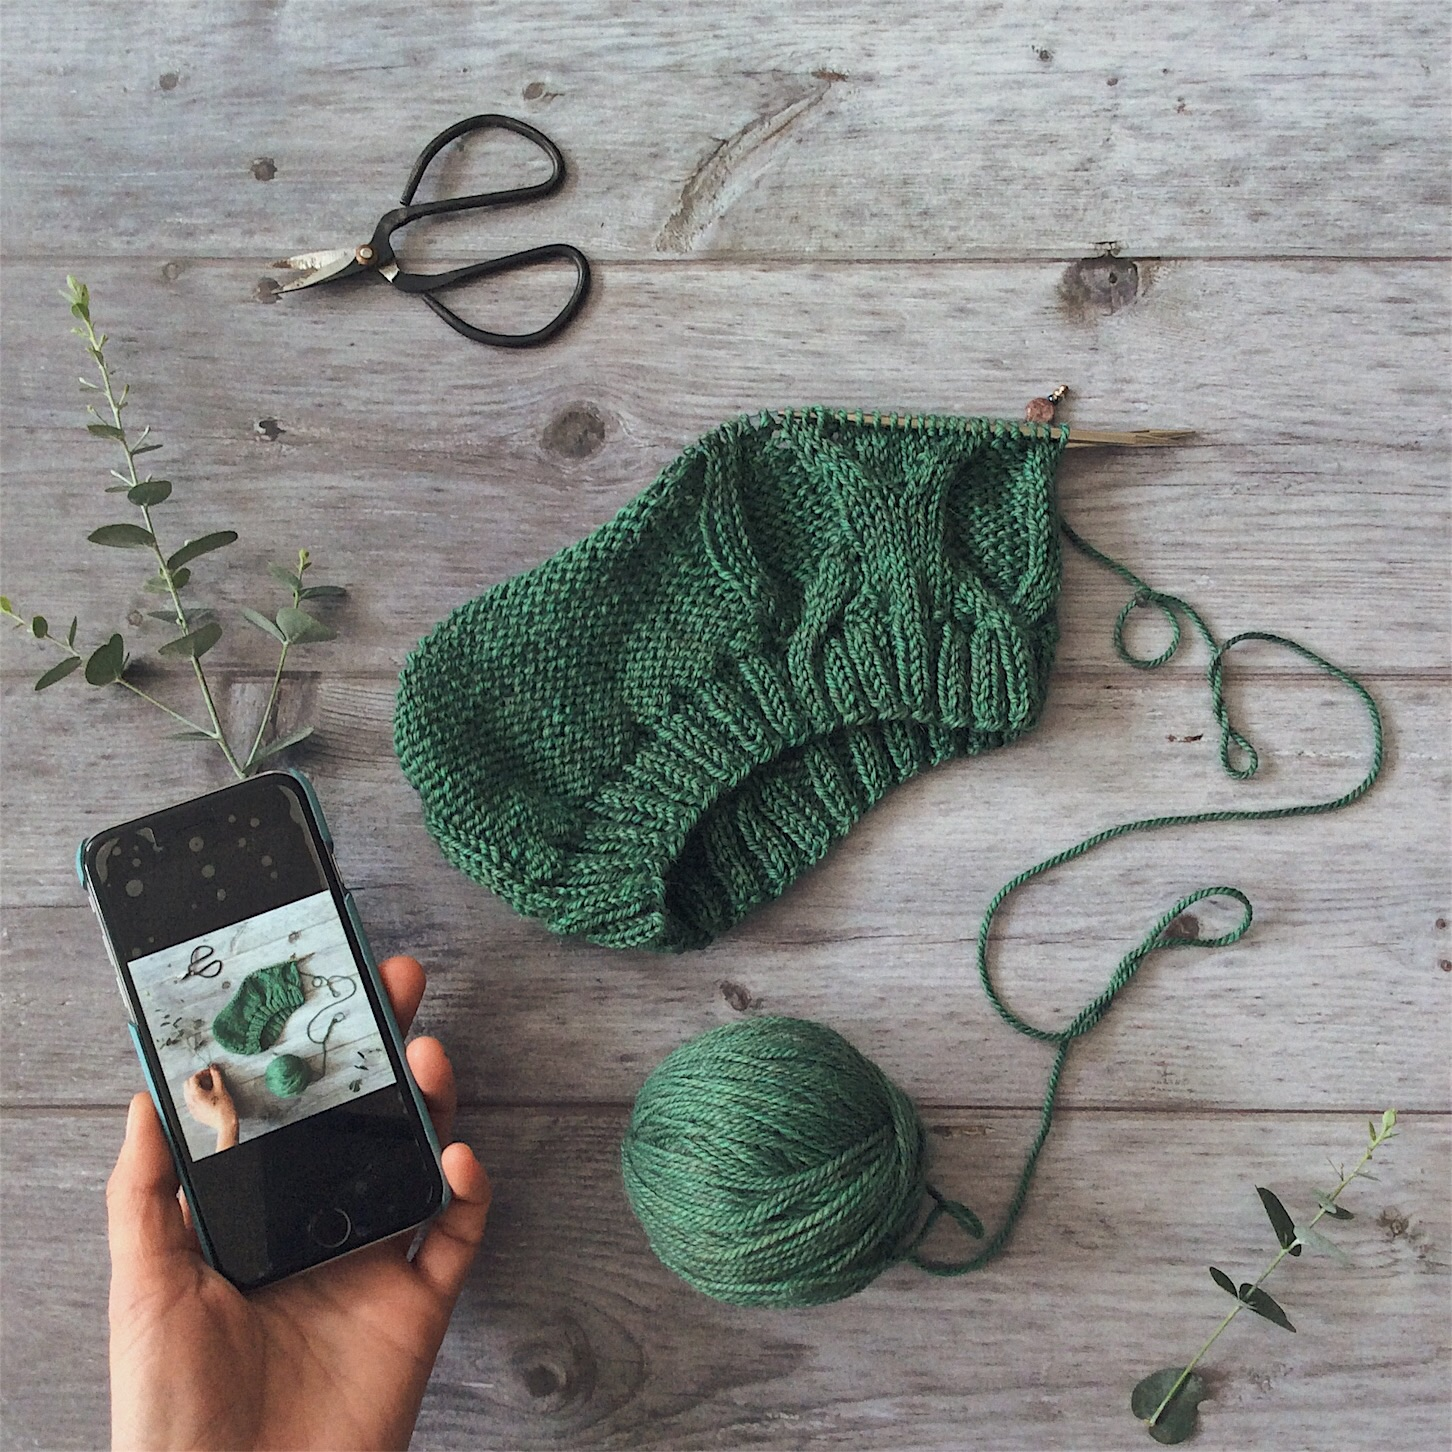 Hat Knitting with The Fibre Co. Yarn